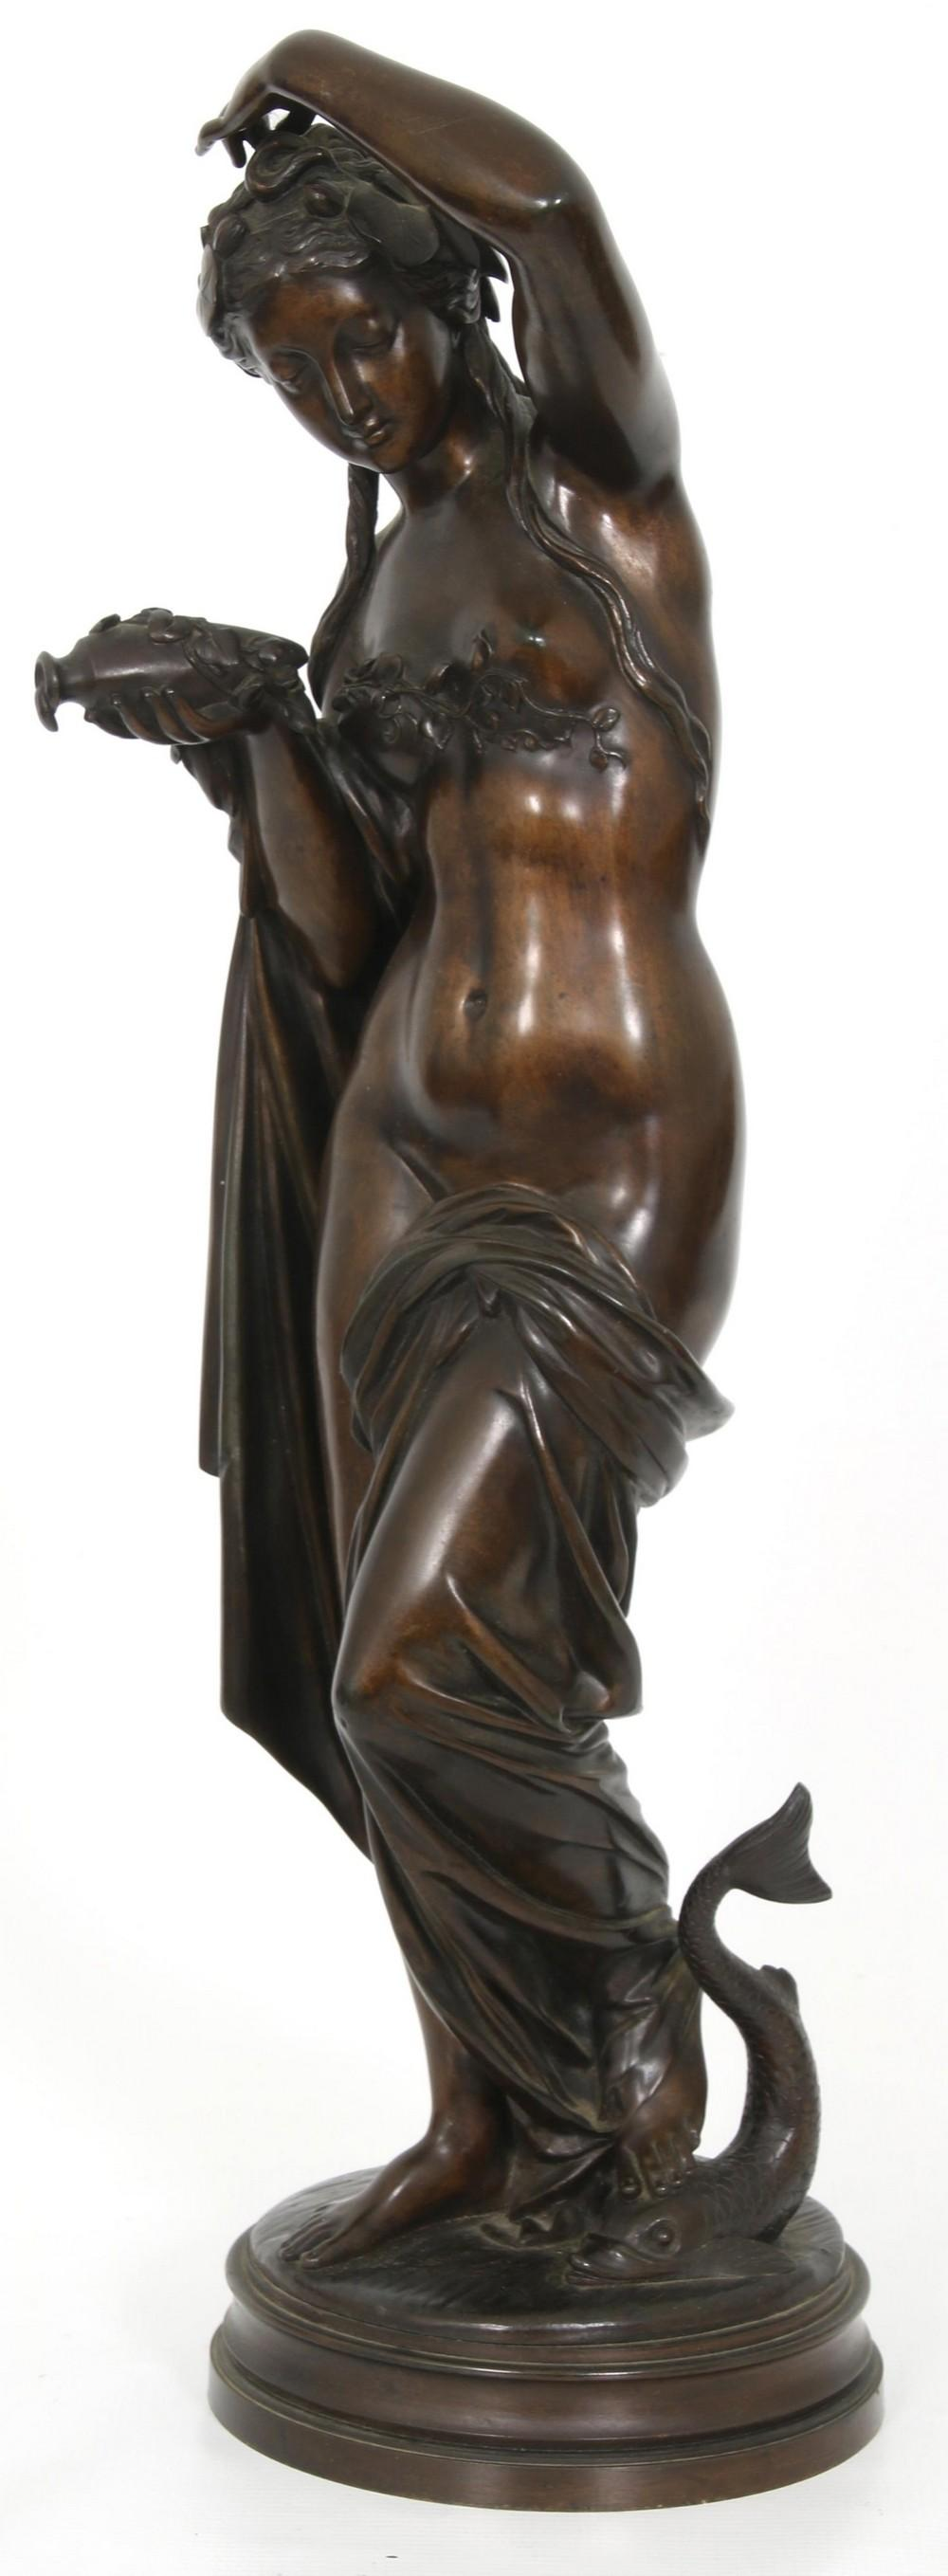 French Bronze Sculpture of a Woman